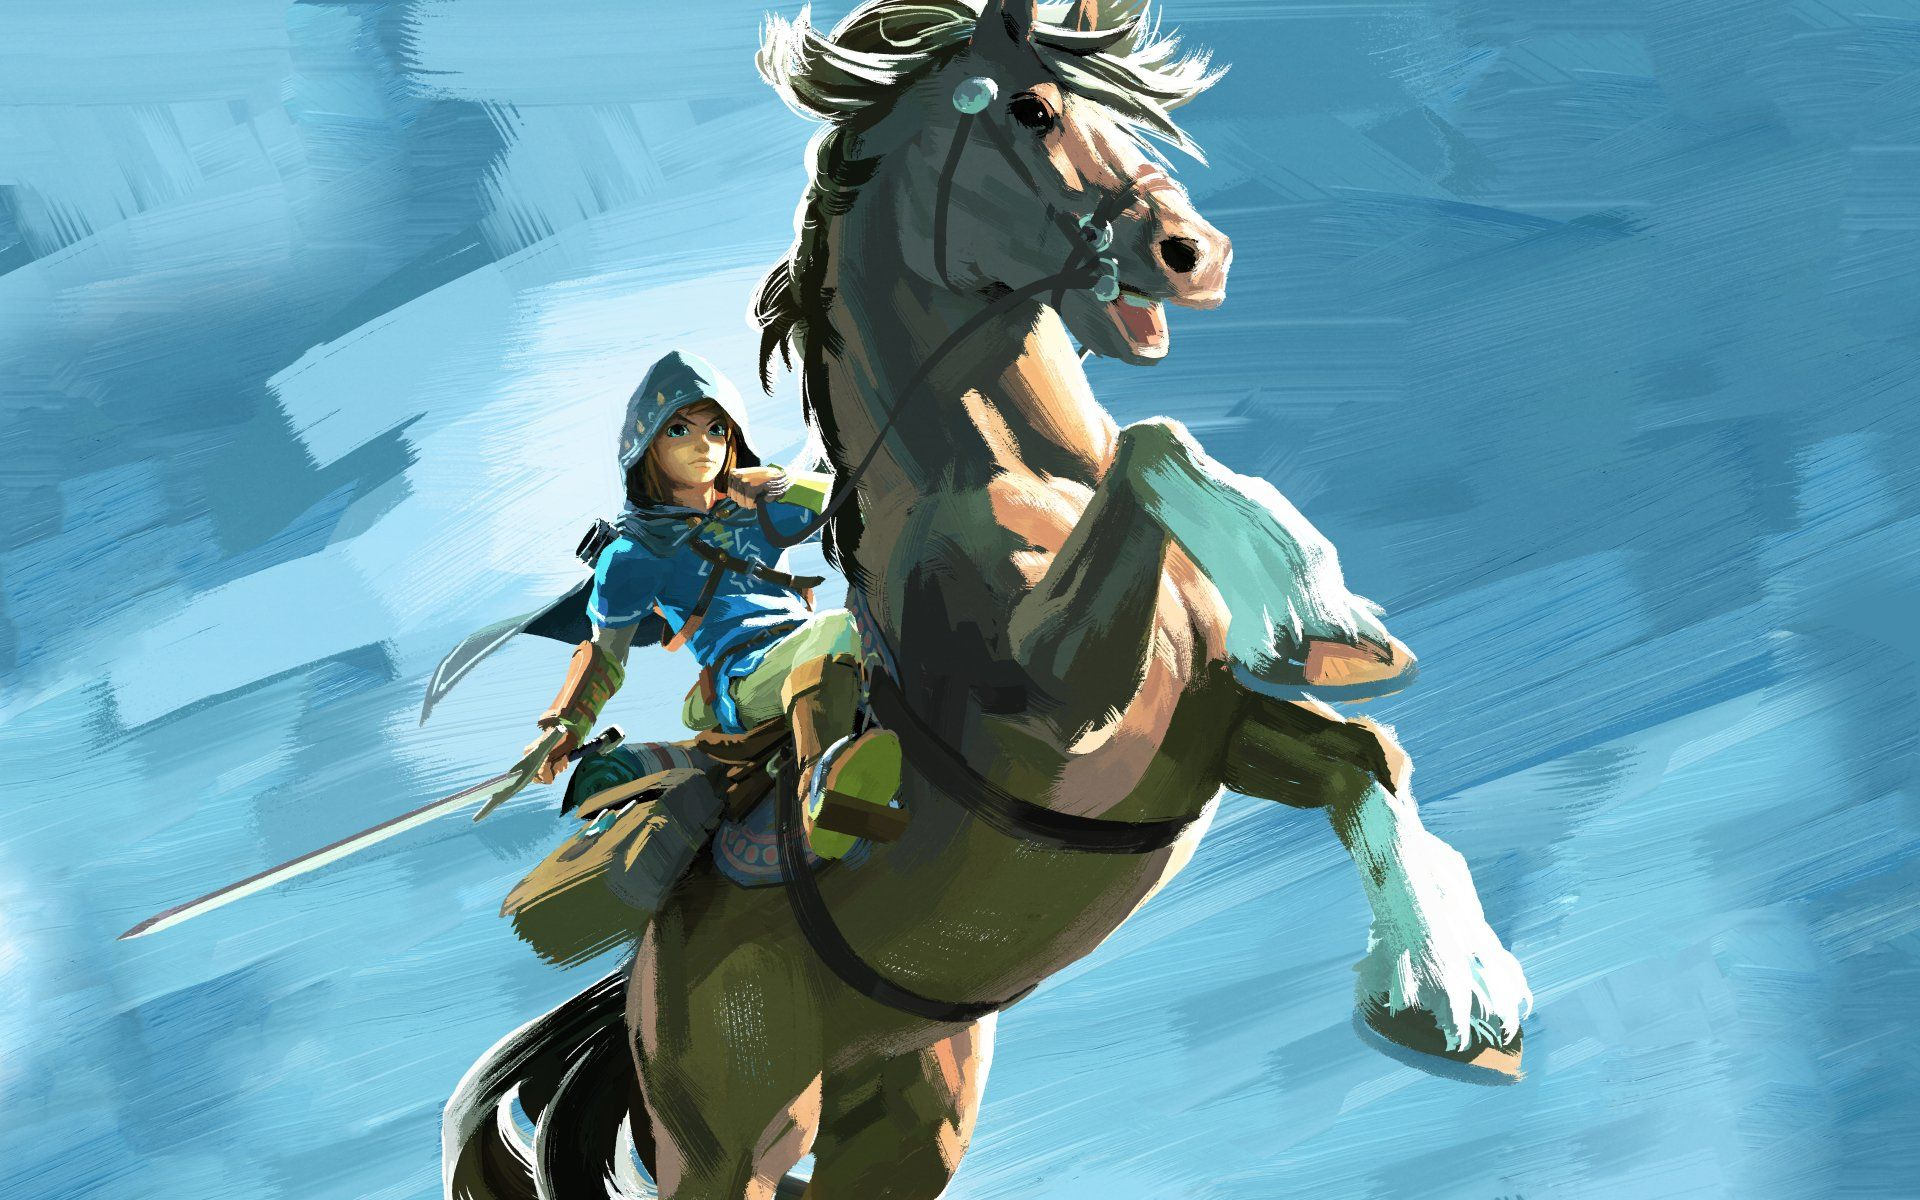 7000x4375 Blue Rider Wallpaper Background Image View Download Comment And Rate Wallpaper Abyss Legend Of Zelda Legend Of Zelda Breath Breath Of The Wild